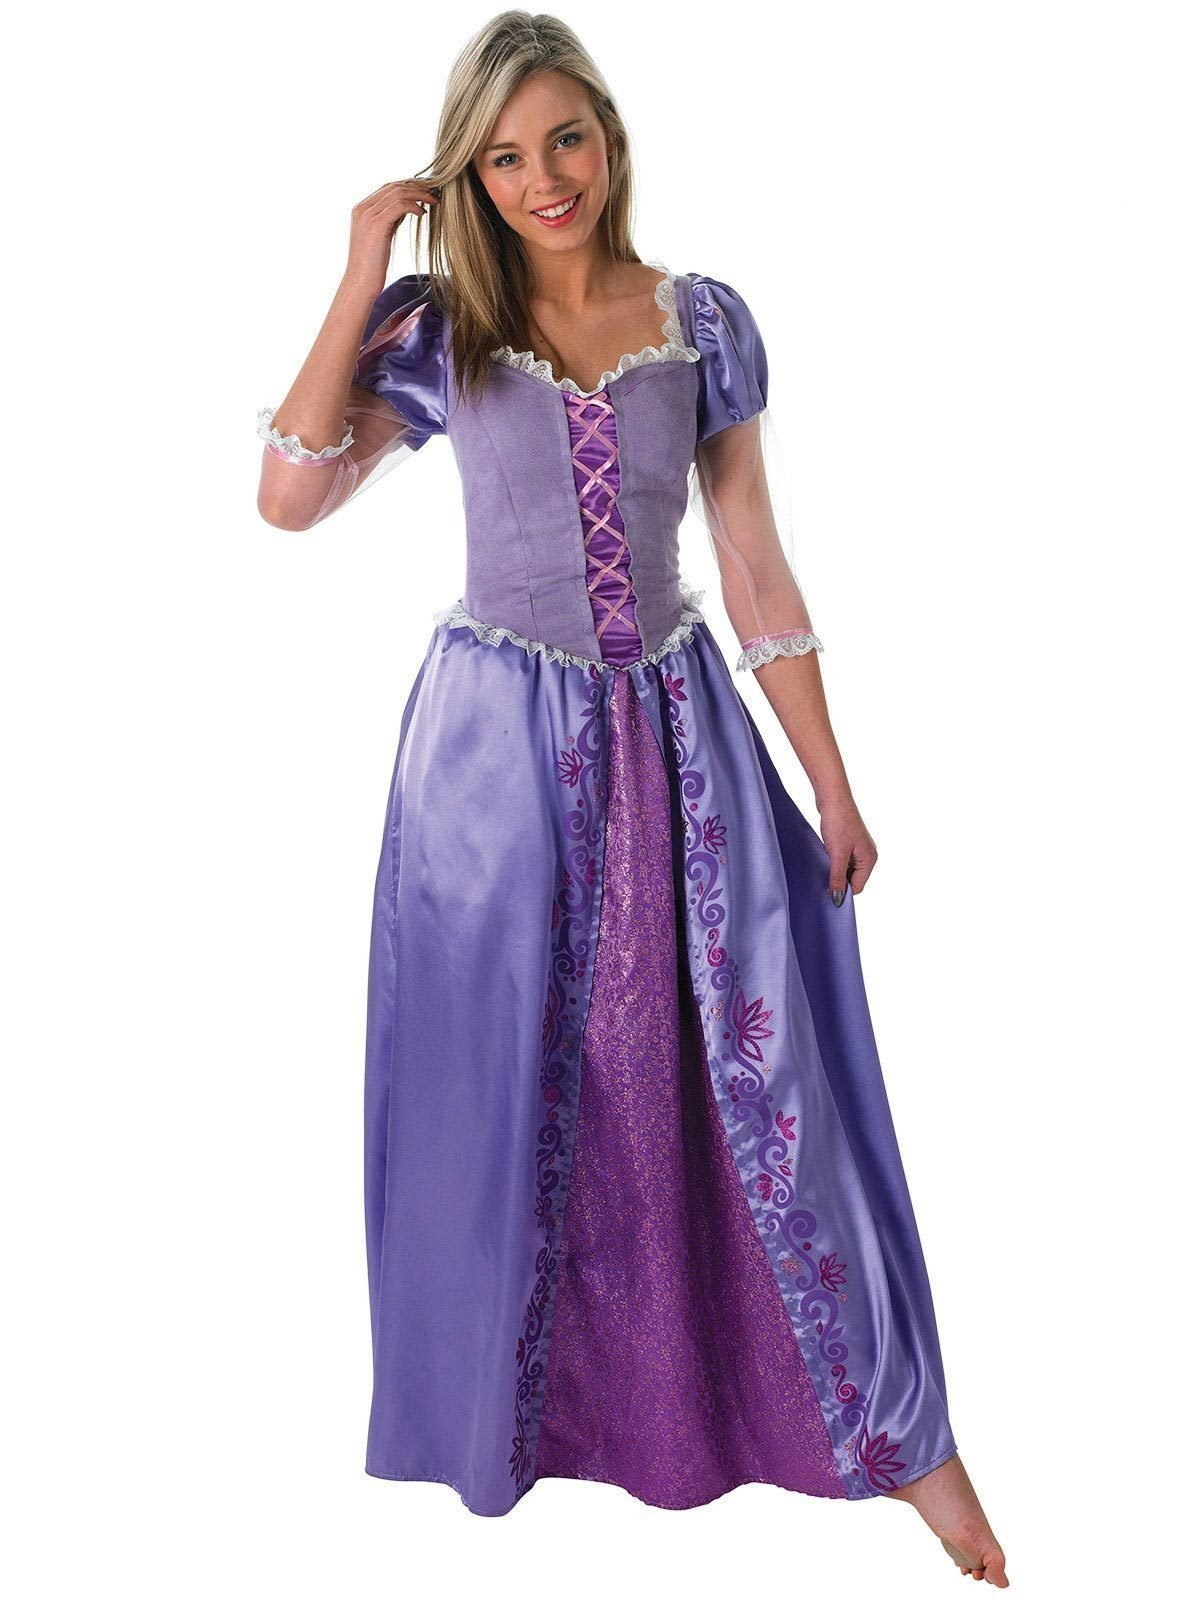 Rapunzel Deluxe Costume - Buy Online Only